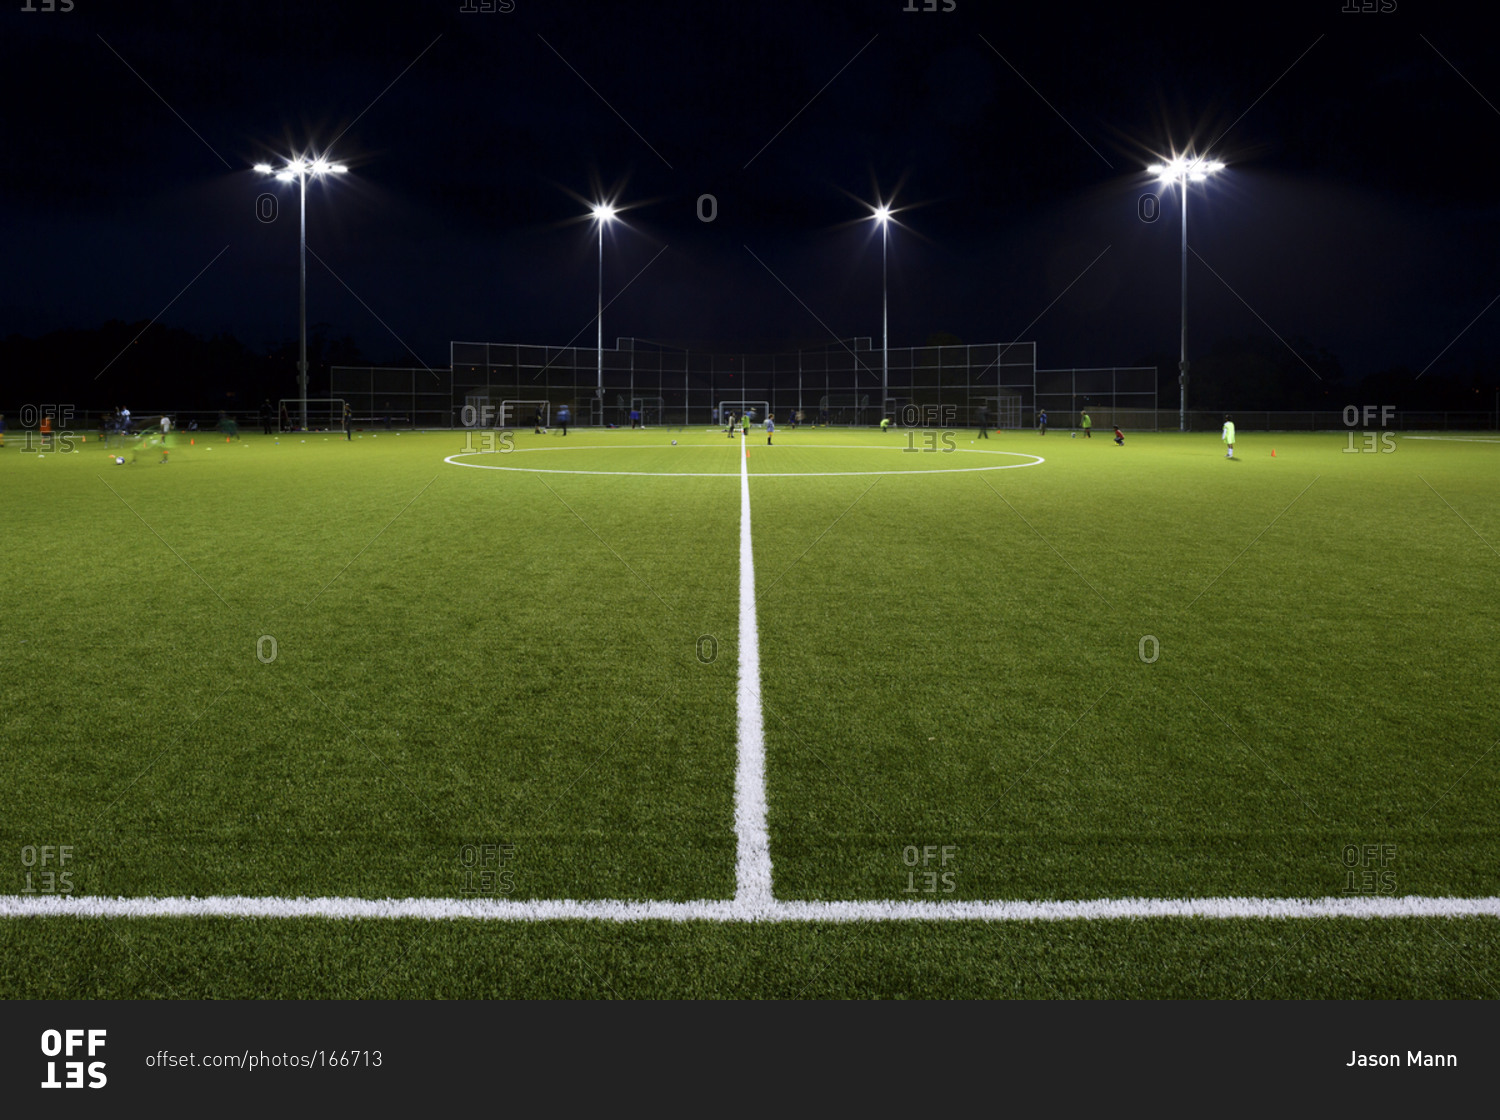 Soccer Field Photography At Night | www.pixshark.com ...